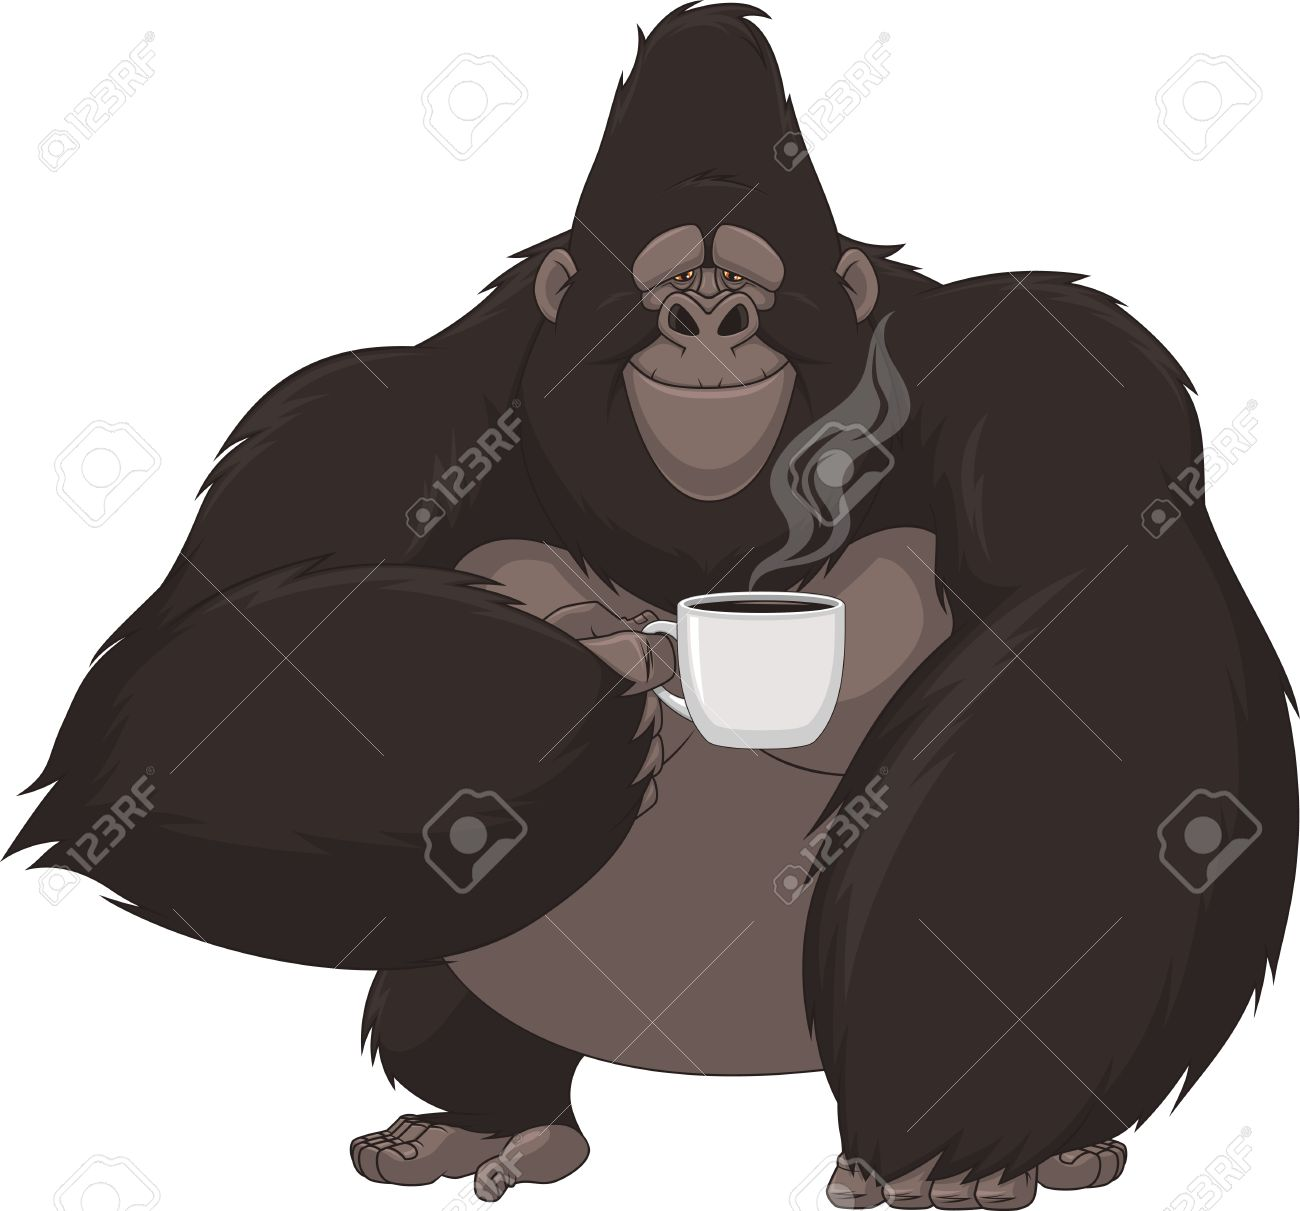 Vector illustration, funny gorilla with a mug of coffee.